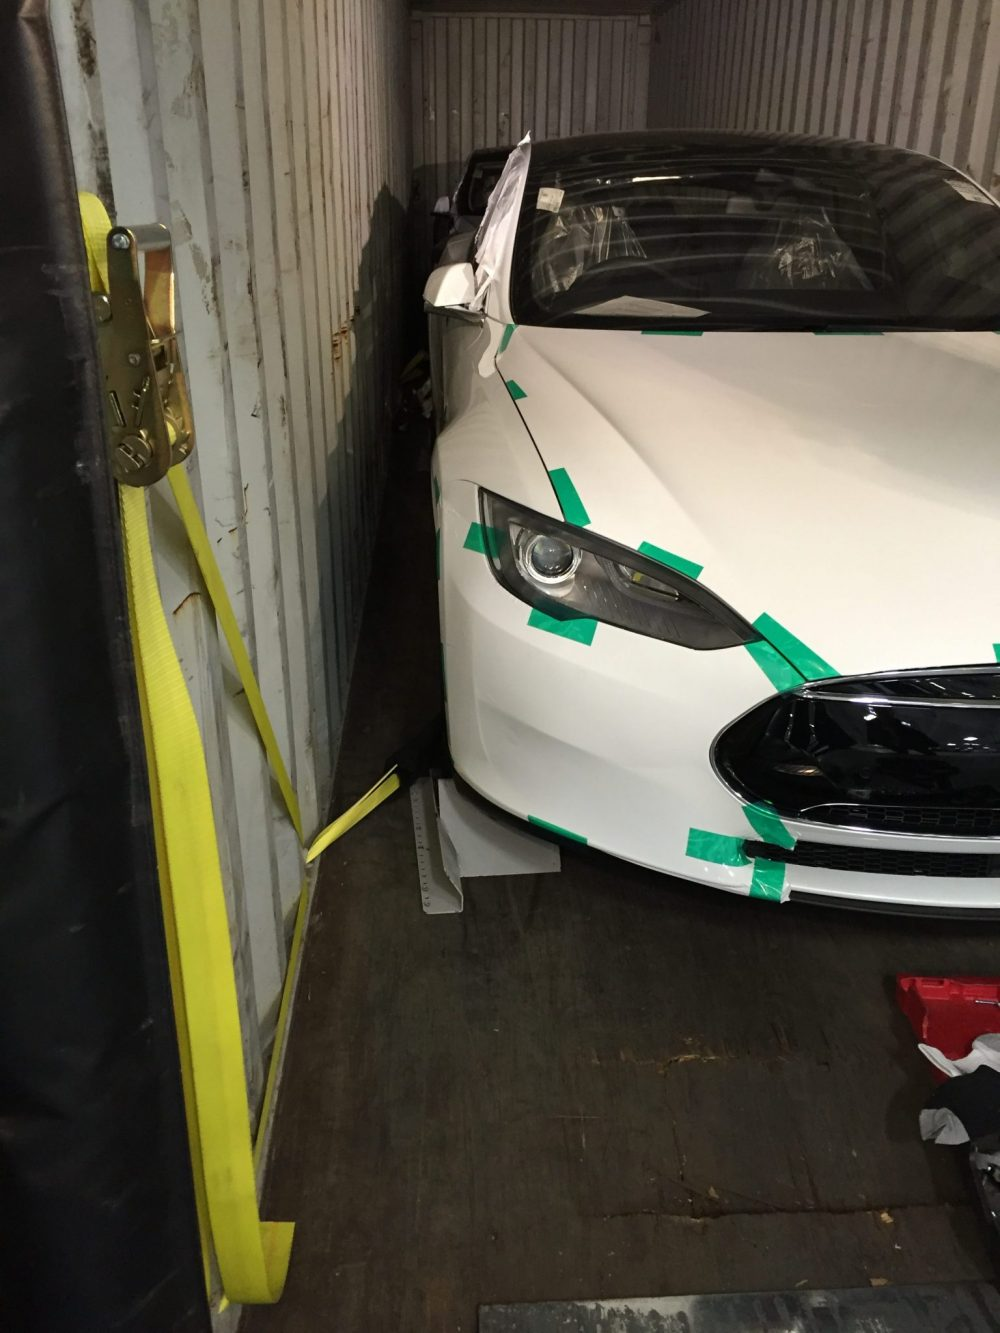 Car in shipping container